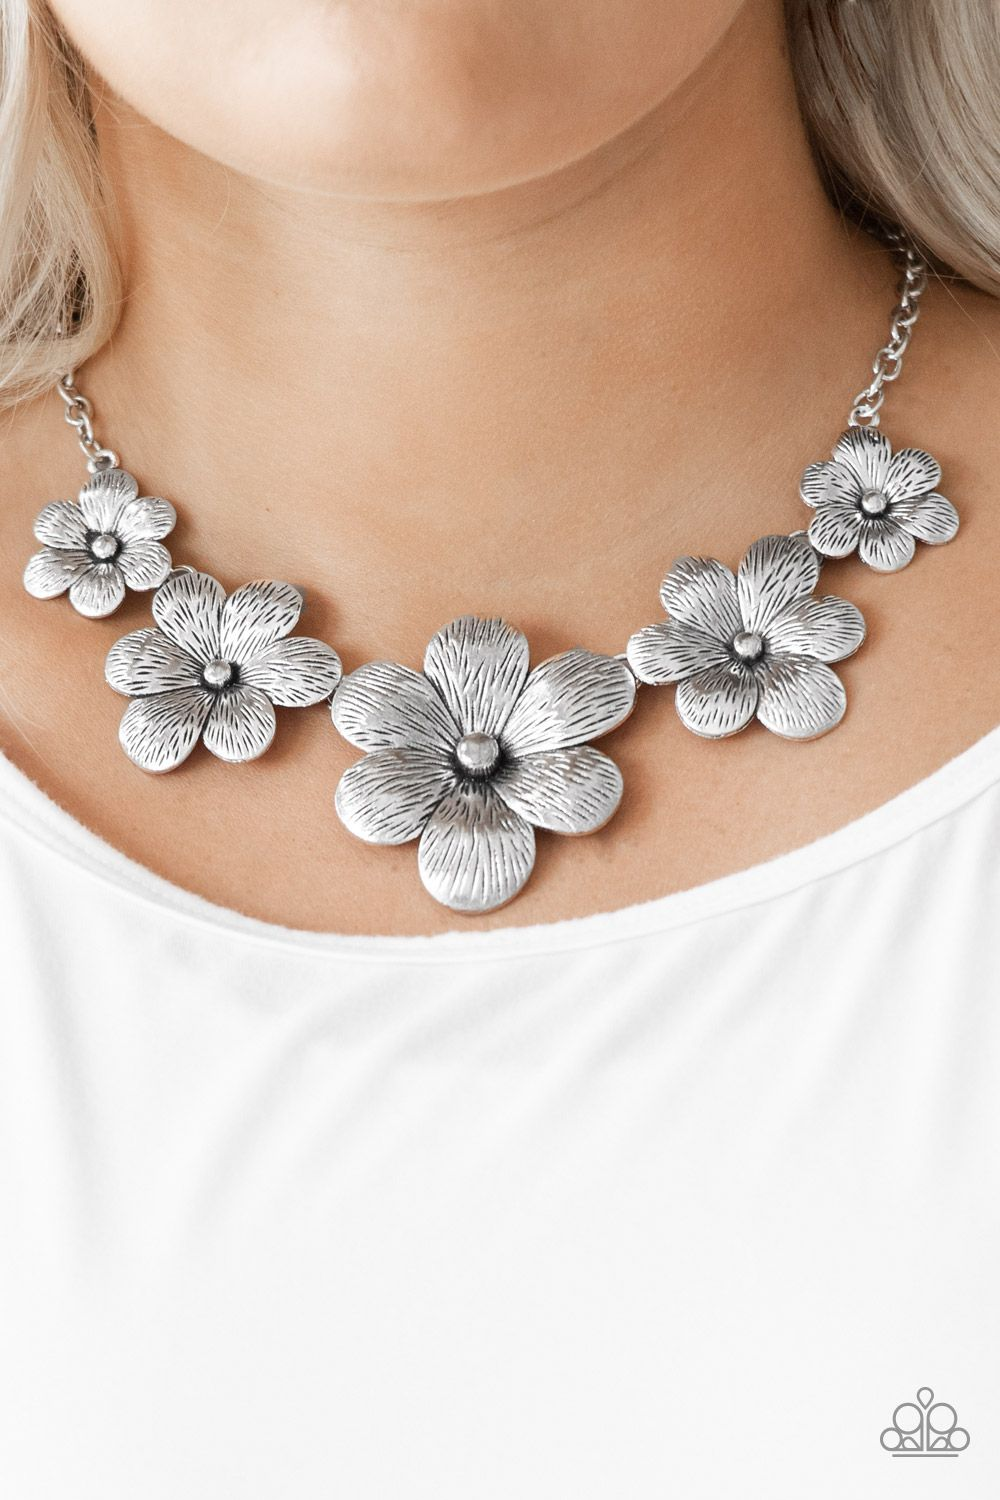 Paparazzi Secret Garden Silver necklace /& earring set